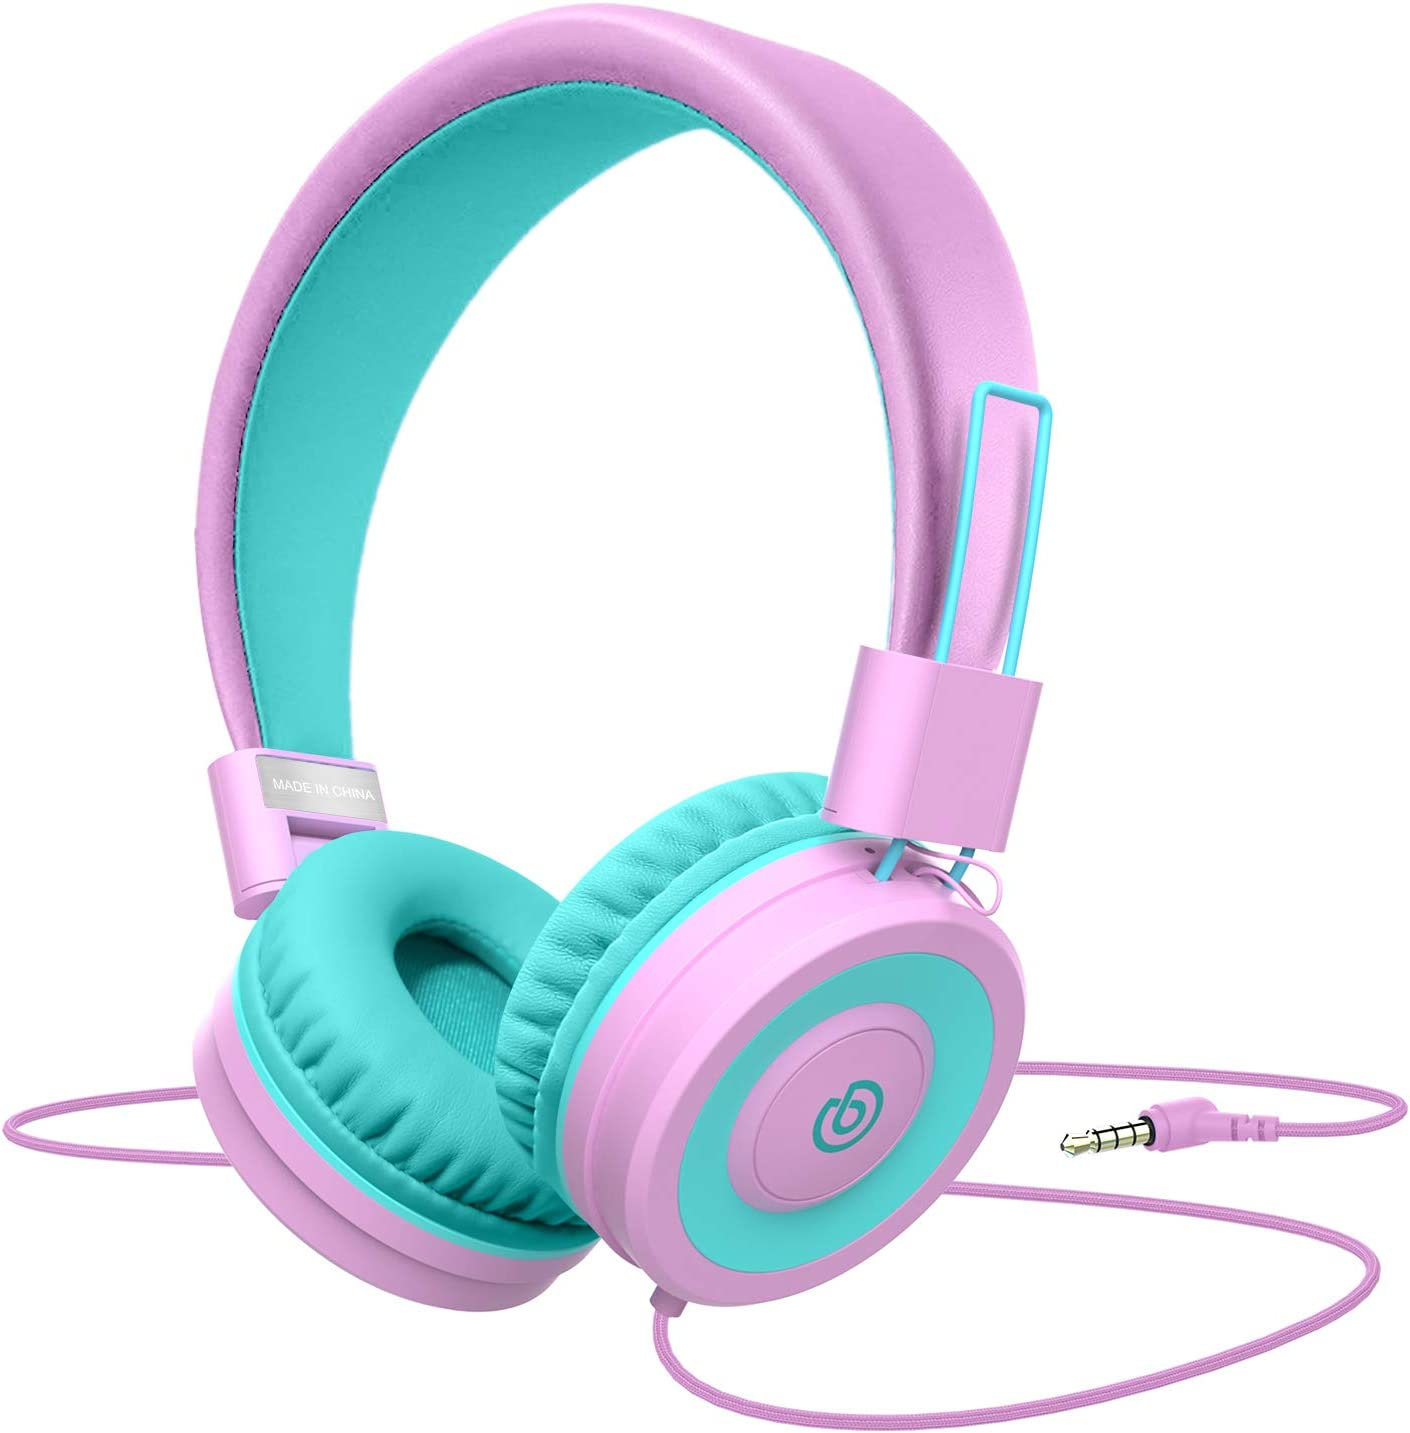 Kids Headphones,Besom i66 Headphones for Girls- Wired Headphones for Kids, Adjustable Foldable Tangle-Free Cord 3.5mm Jack -Childrens Headphones on Ear for iPad Tablet Kindle Airplane School(Pink)